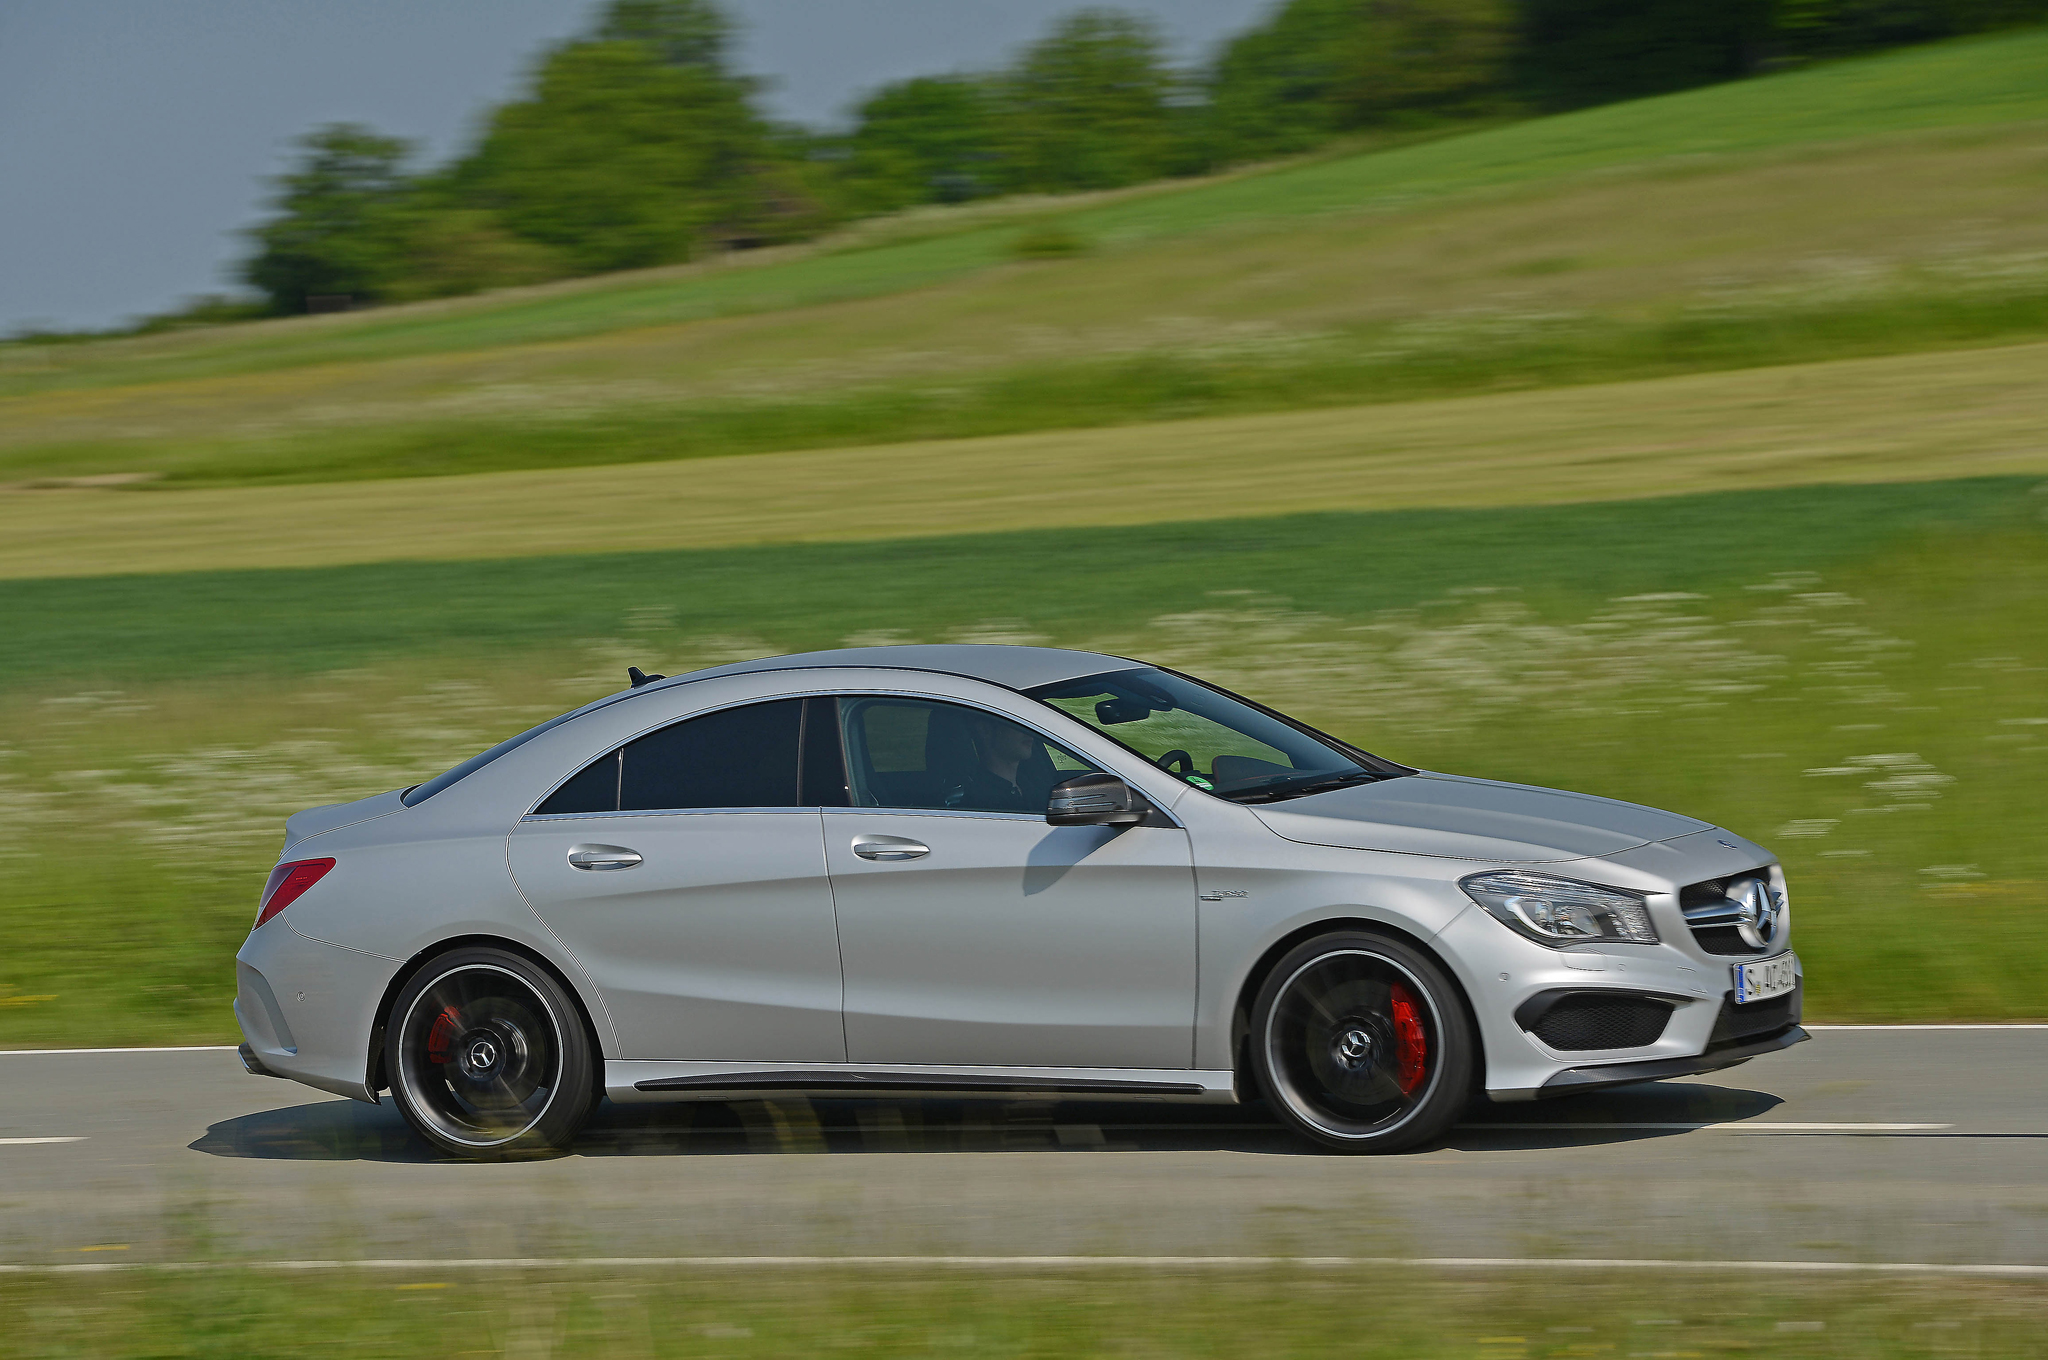 best selection of pictures for car 2014 mercedes benz cla45 amg on all. Cars Review. Best American Auto & Cars Review